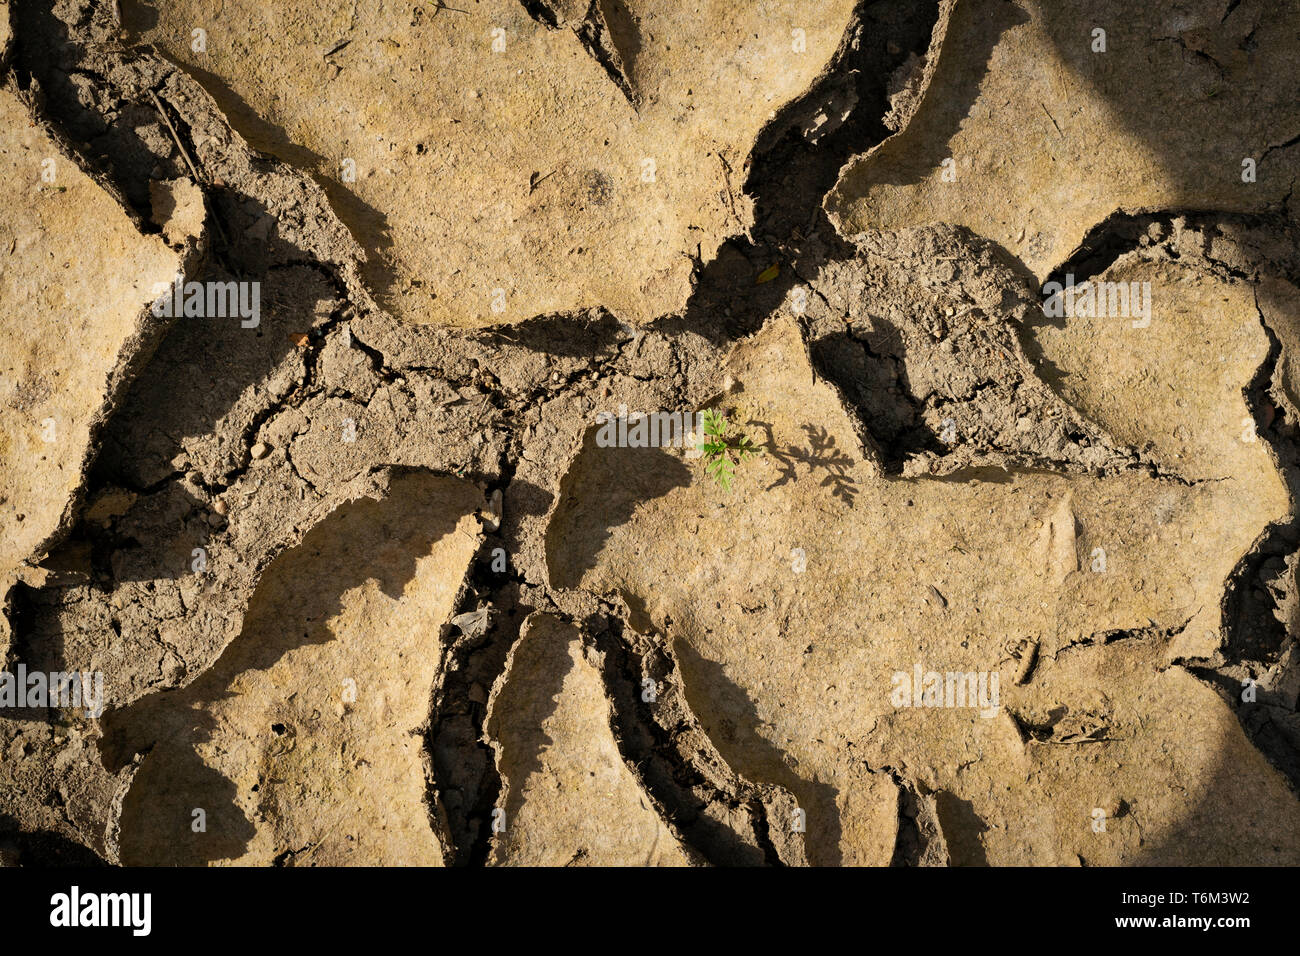 In the harsh landscape of a dried up mud puddle, one small plant survives. With God all things are possible. - Stock Image